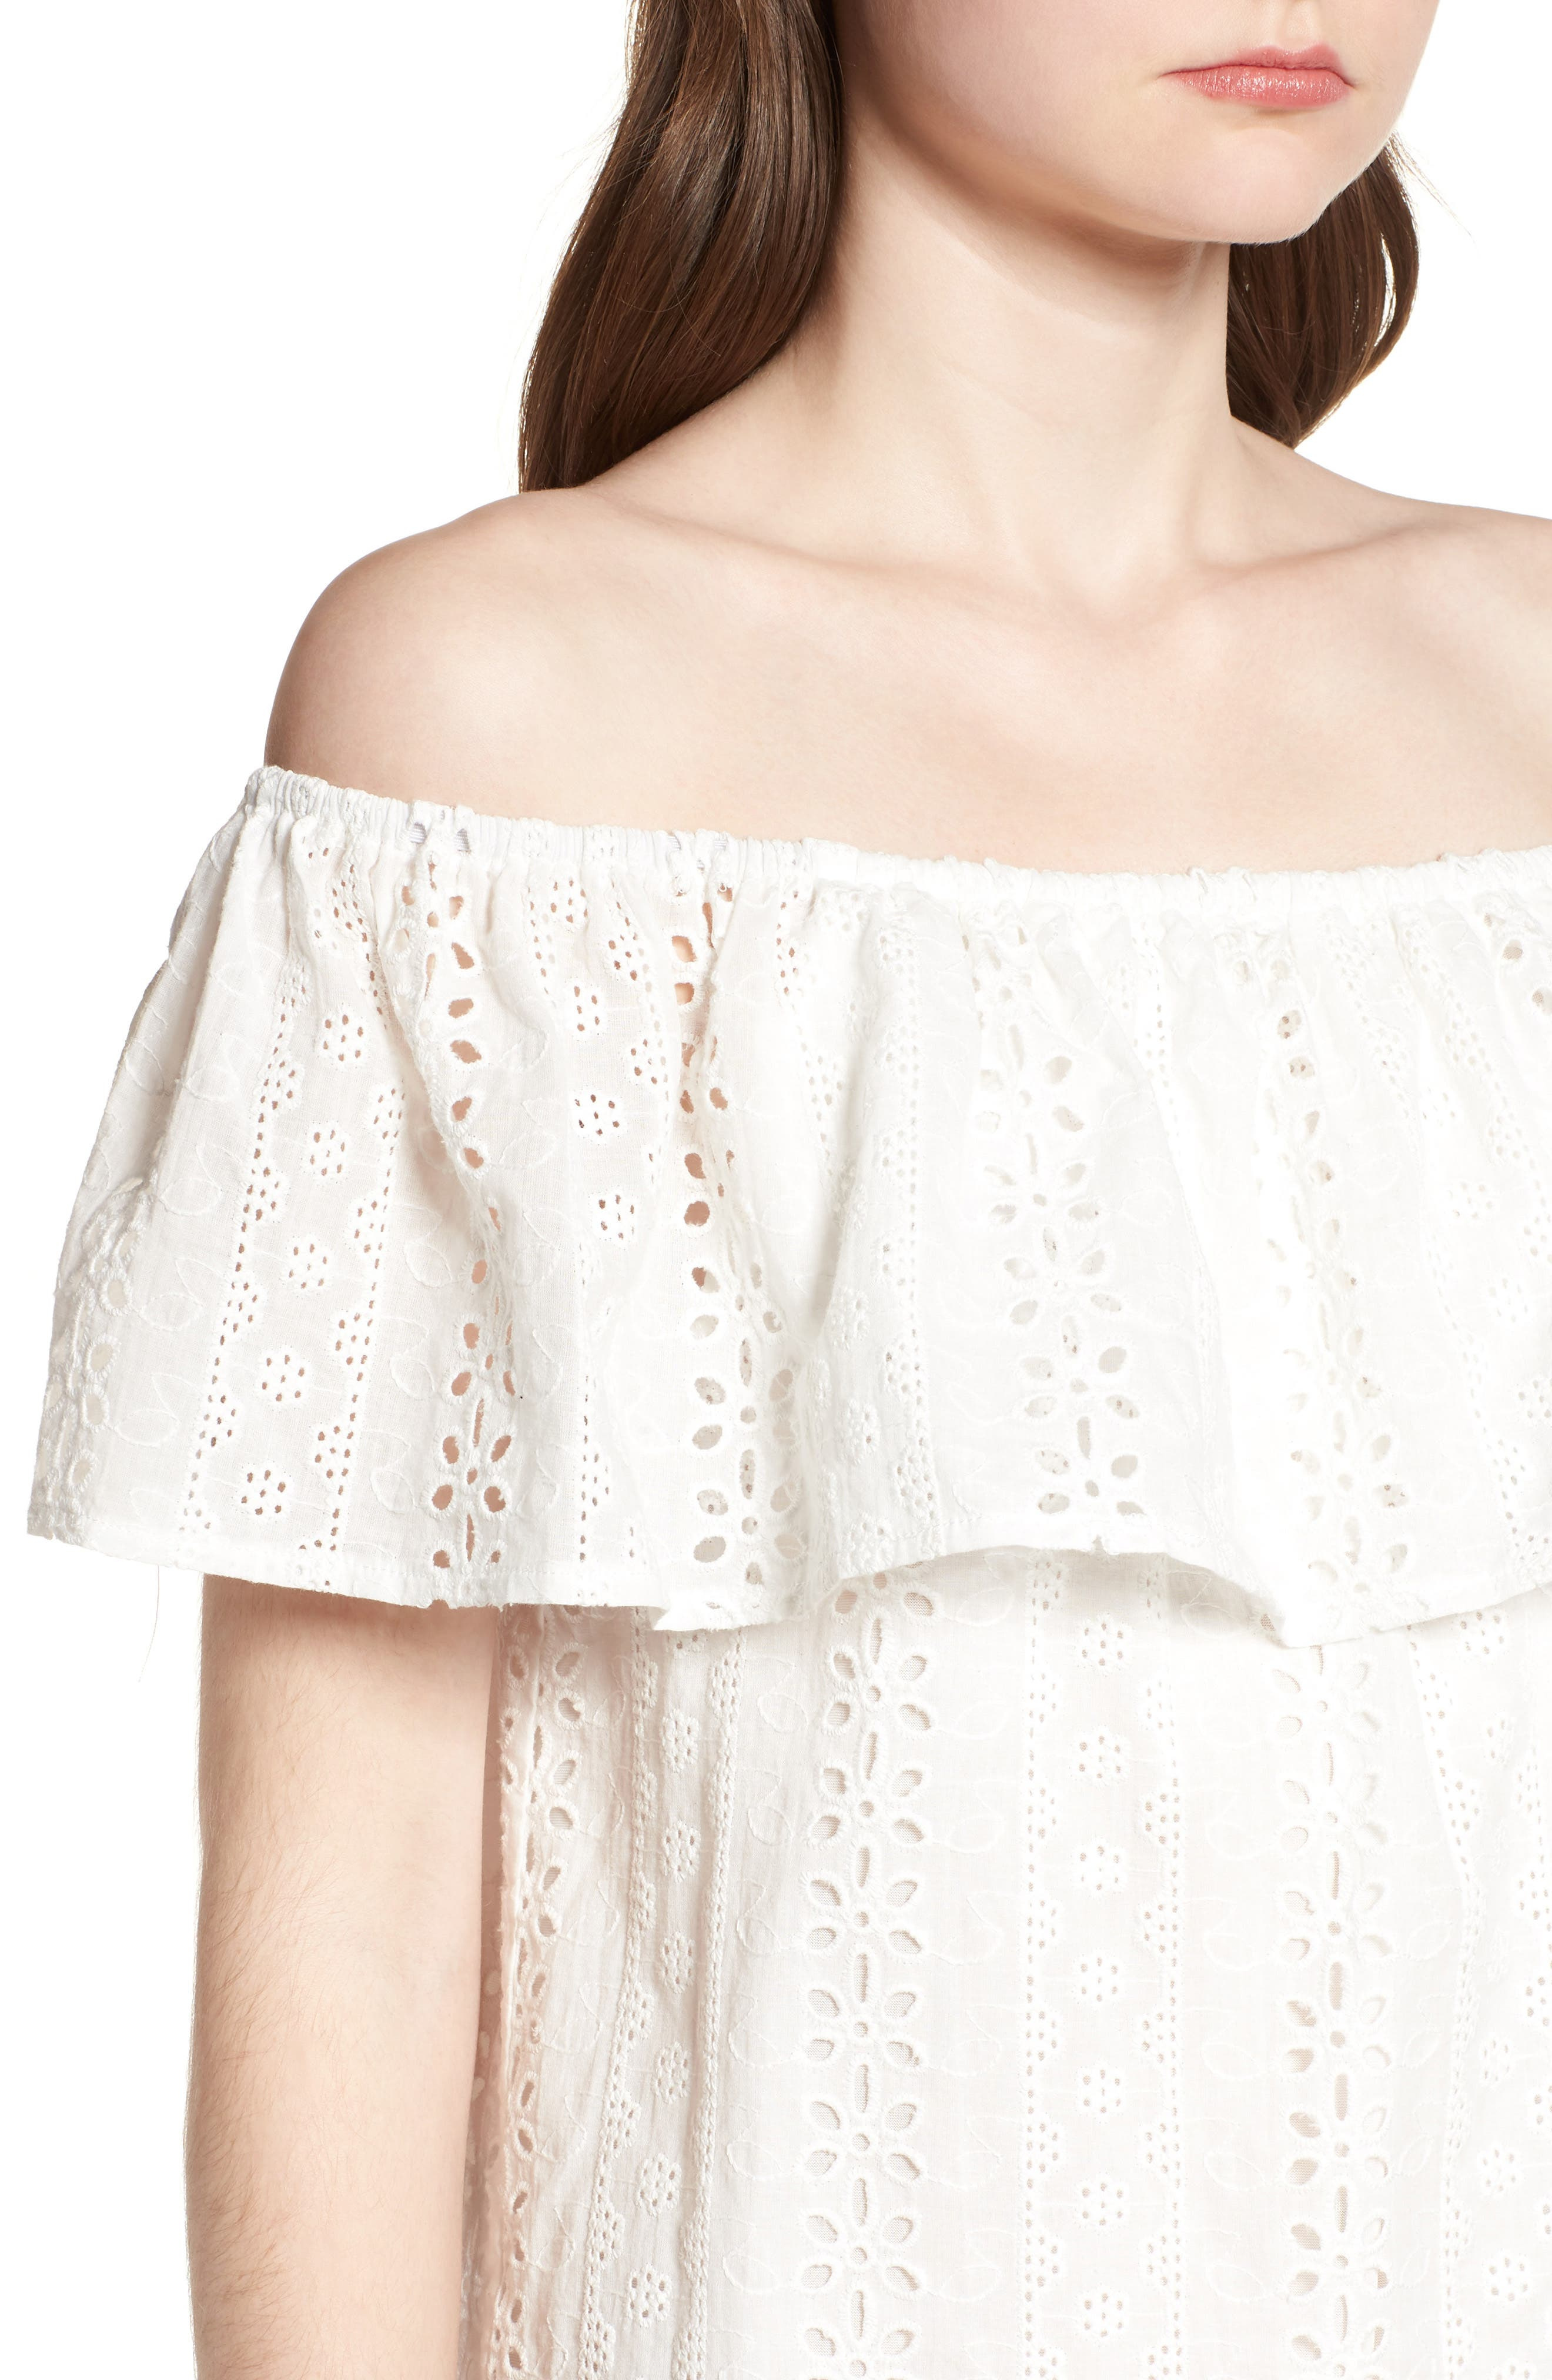 Bishop + Young Eyelet Ruffle Off the Shoulder Dress,                             Alternate thumbnail 4, color,                             100